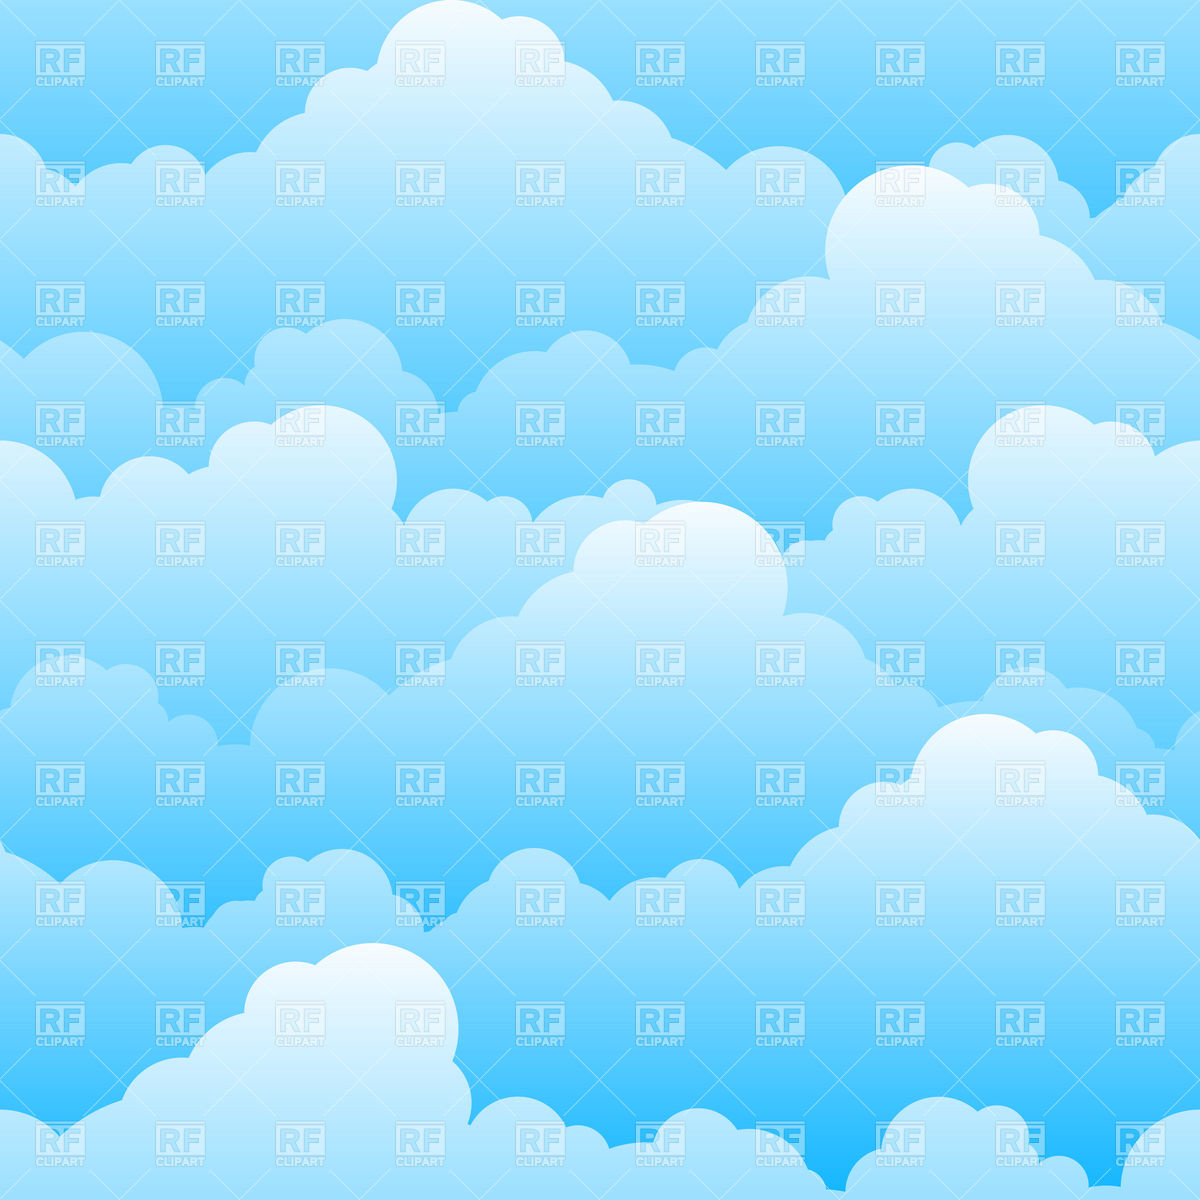 Clouds clipart blue background Clipart Download Cliparts on Art